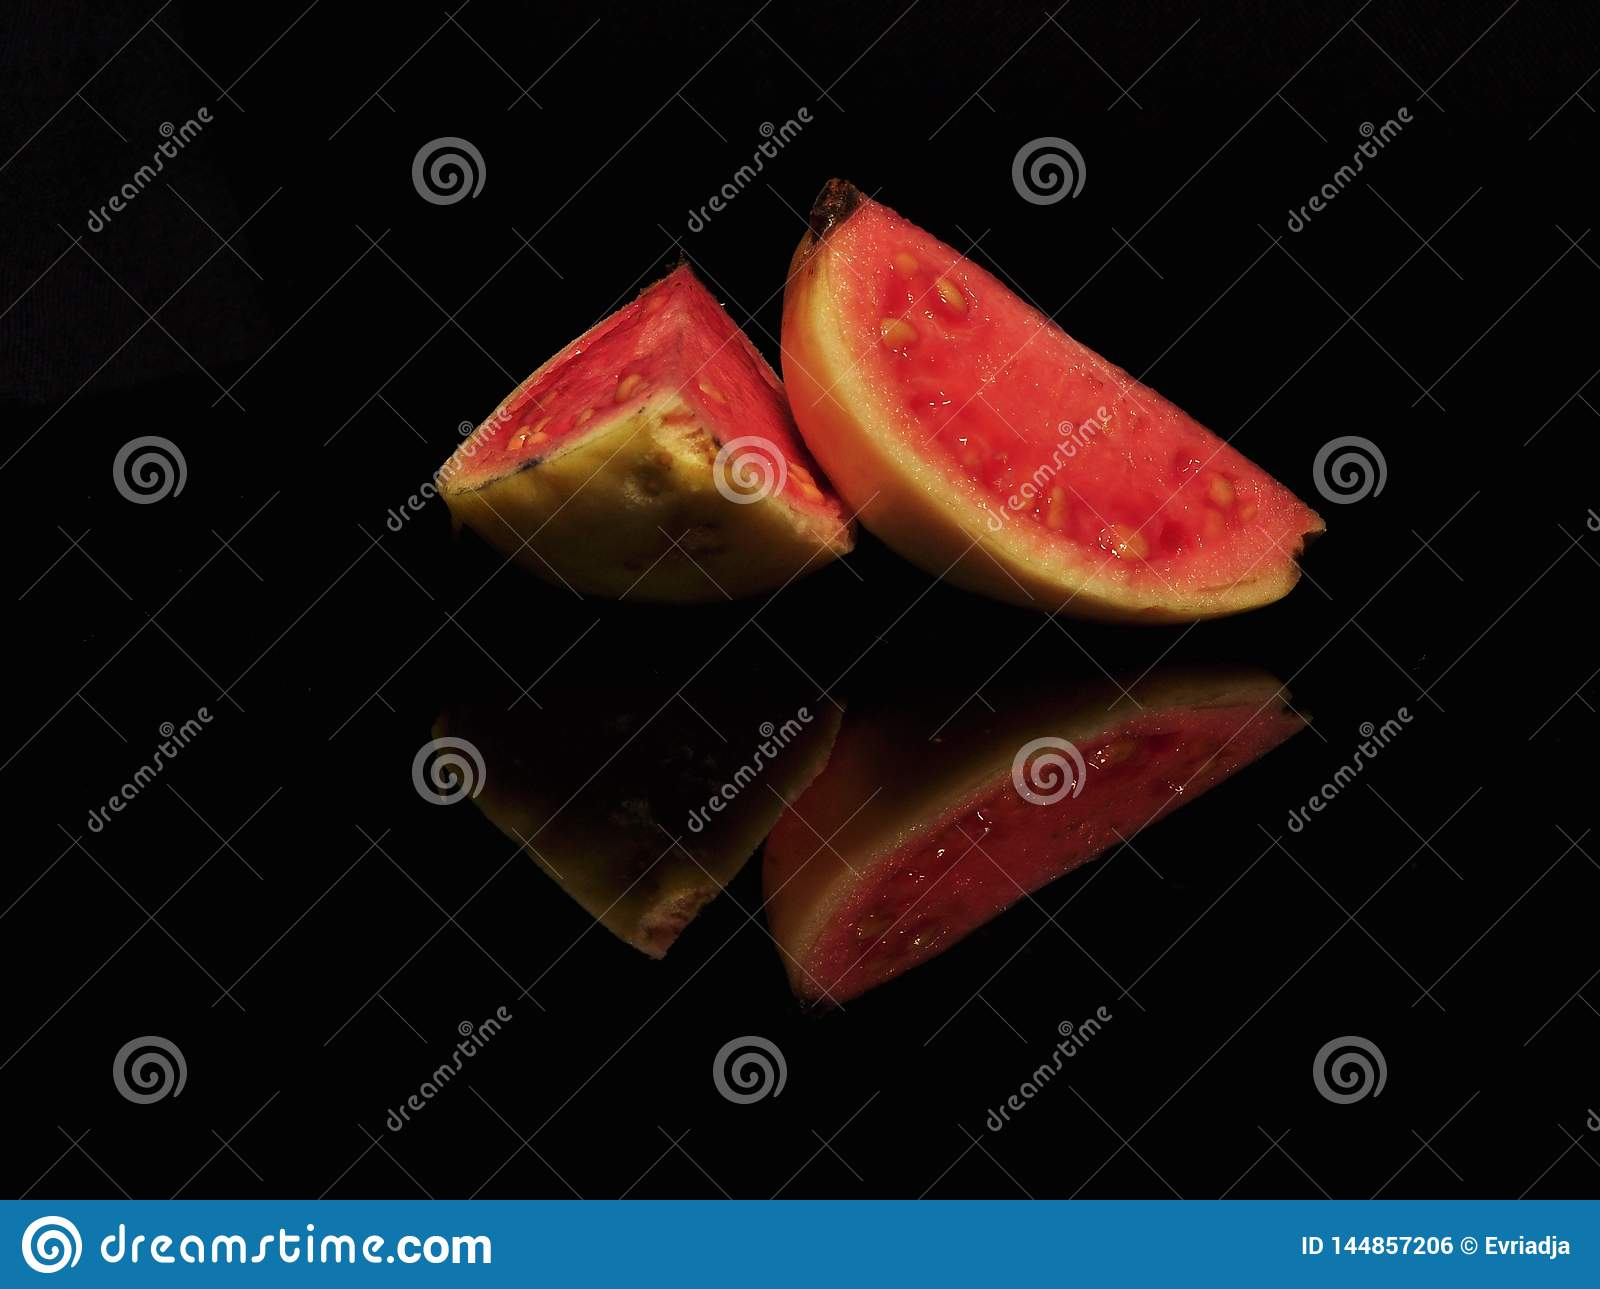 RED GUAVA ISOLATED ON BLACK BACKGROUND